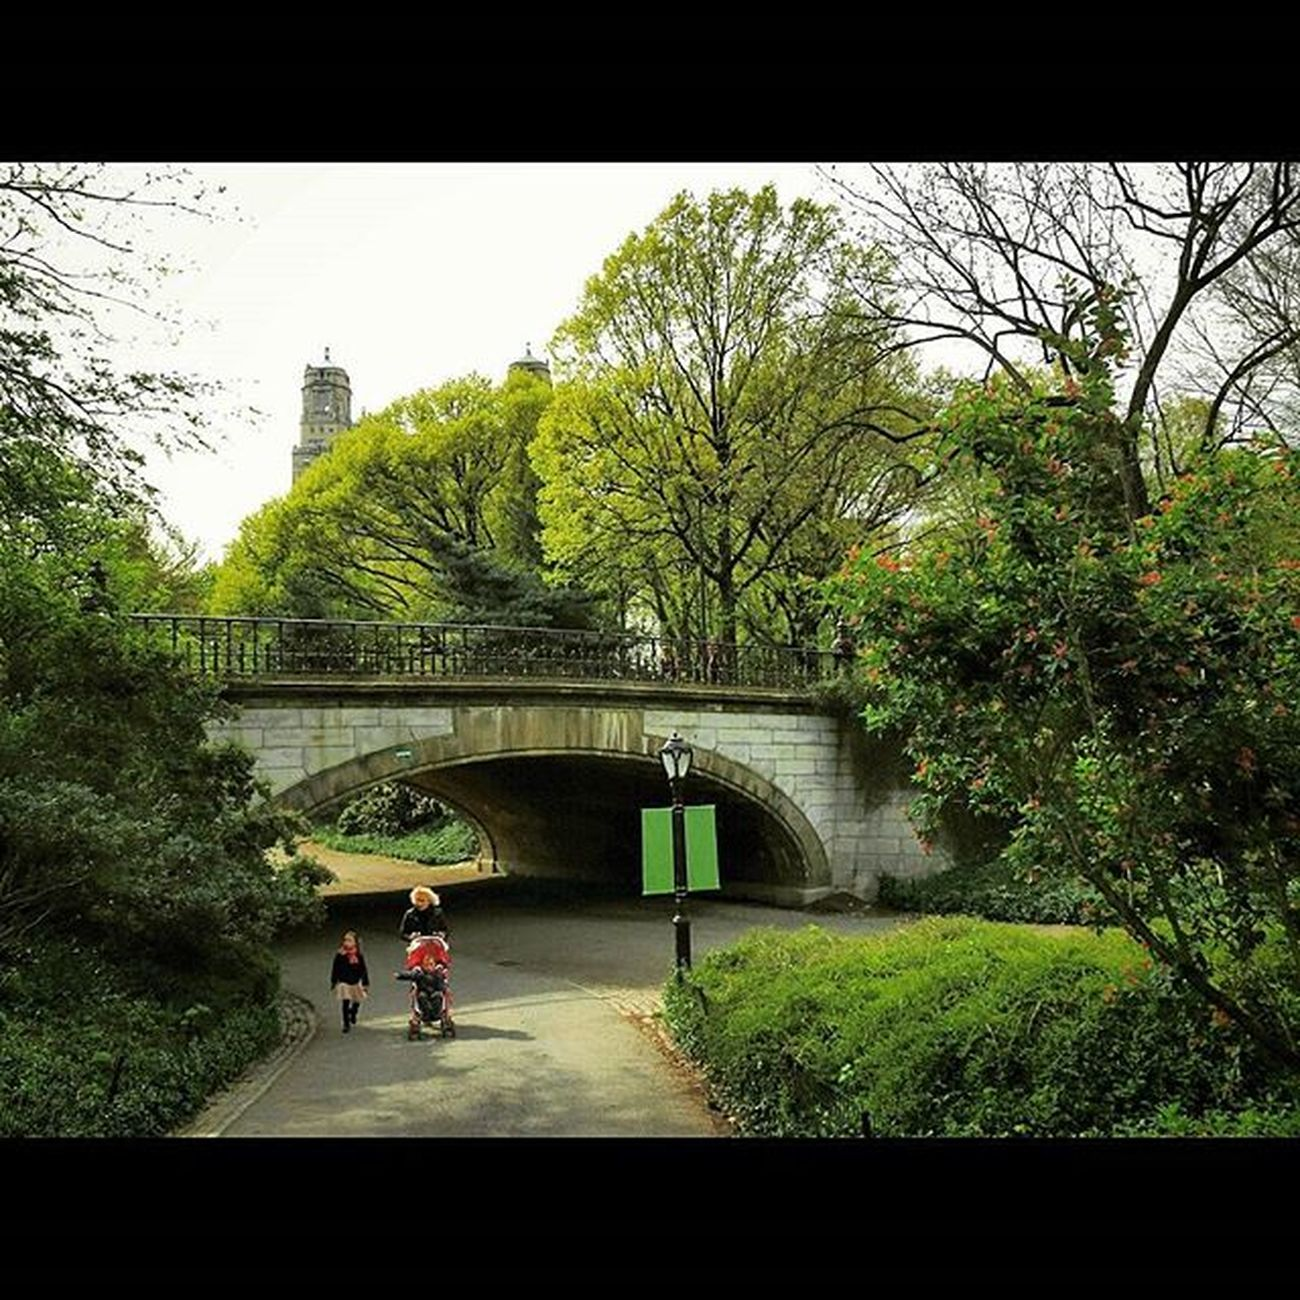 Winterdale Arch in Central Park. : : Olmsted Winterdalearch Centralparknyc CentralPark NYC Newyork Newyorkcity Newyorkcitythroughmyeyes Streetshooter Streetphotography Streetphoto Documentaryphoto Documentaryphotography Urbanexploration Urbanhike Streetscape Nystreetphotography Urbanlandscape Landscapelovers Landscapephotography Landscapeshooters Shootermag Yetmagazine Subjectivelyobjective Fotoguerrilla way2ill artofvisuals picoftheday PhotoOfTheDay artoftheday